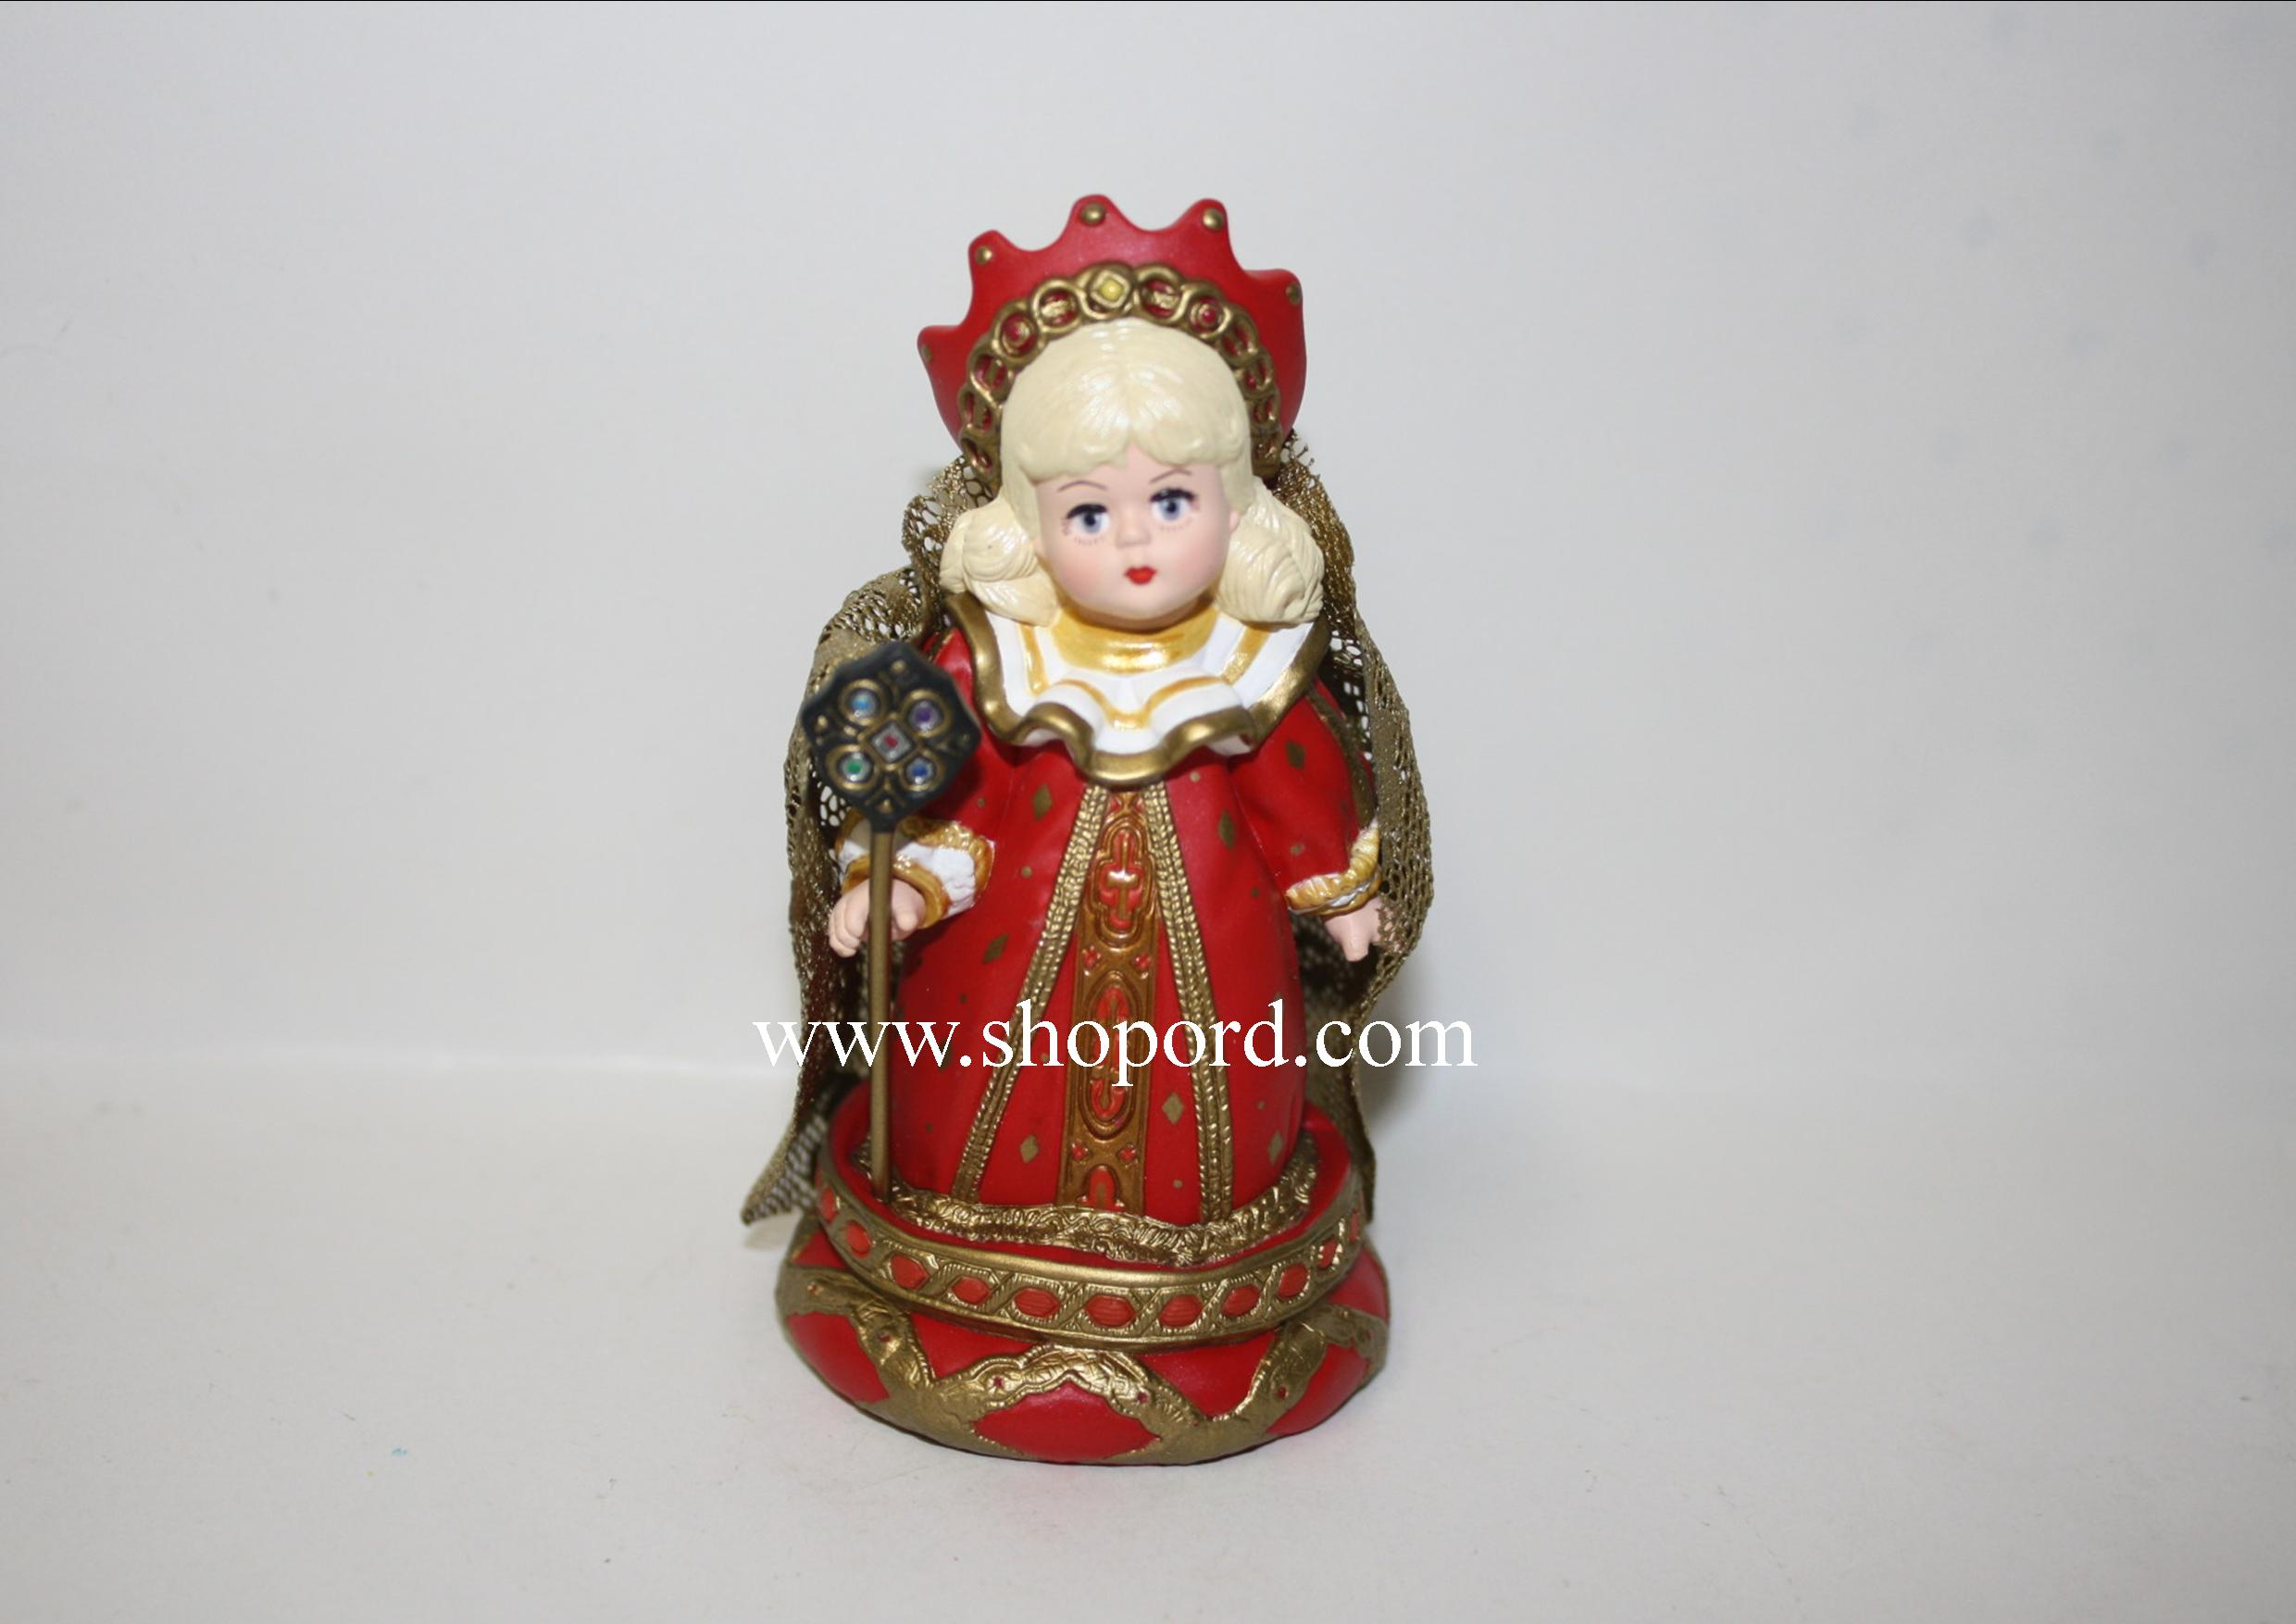 Hallmark 1999 Red Queen Alice In Wonderland Ornament 4th In The Madame Alexander Series QX6379